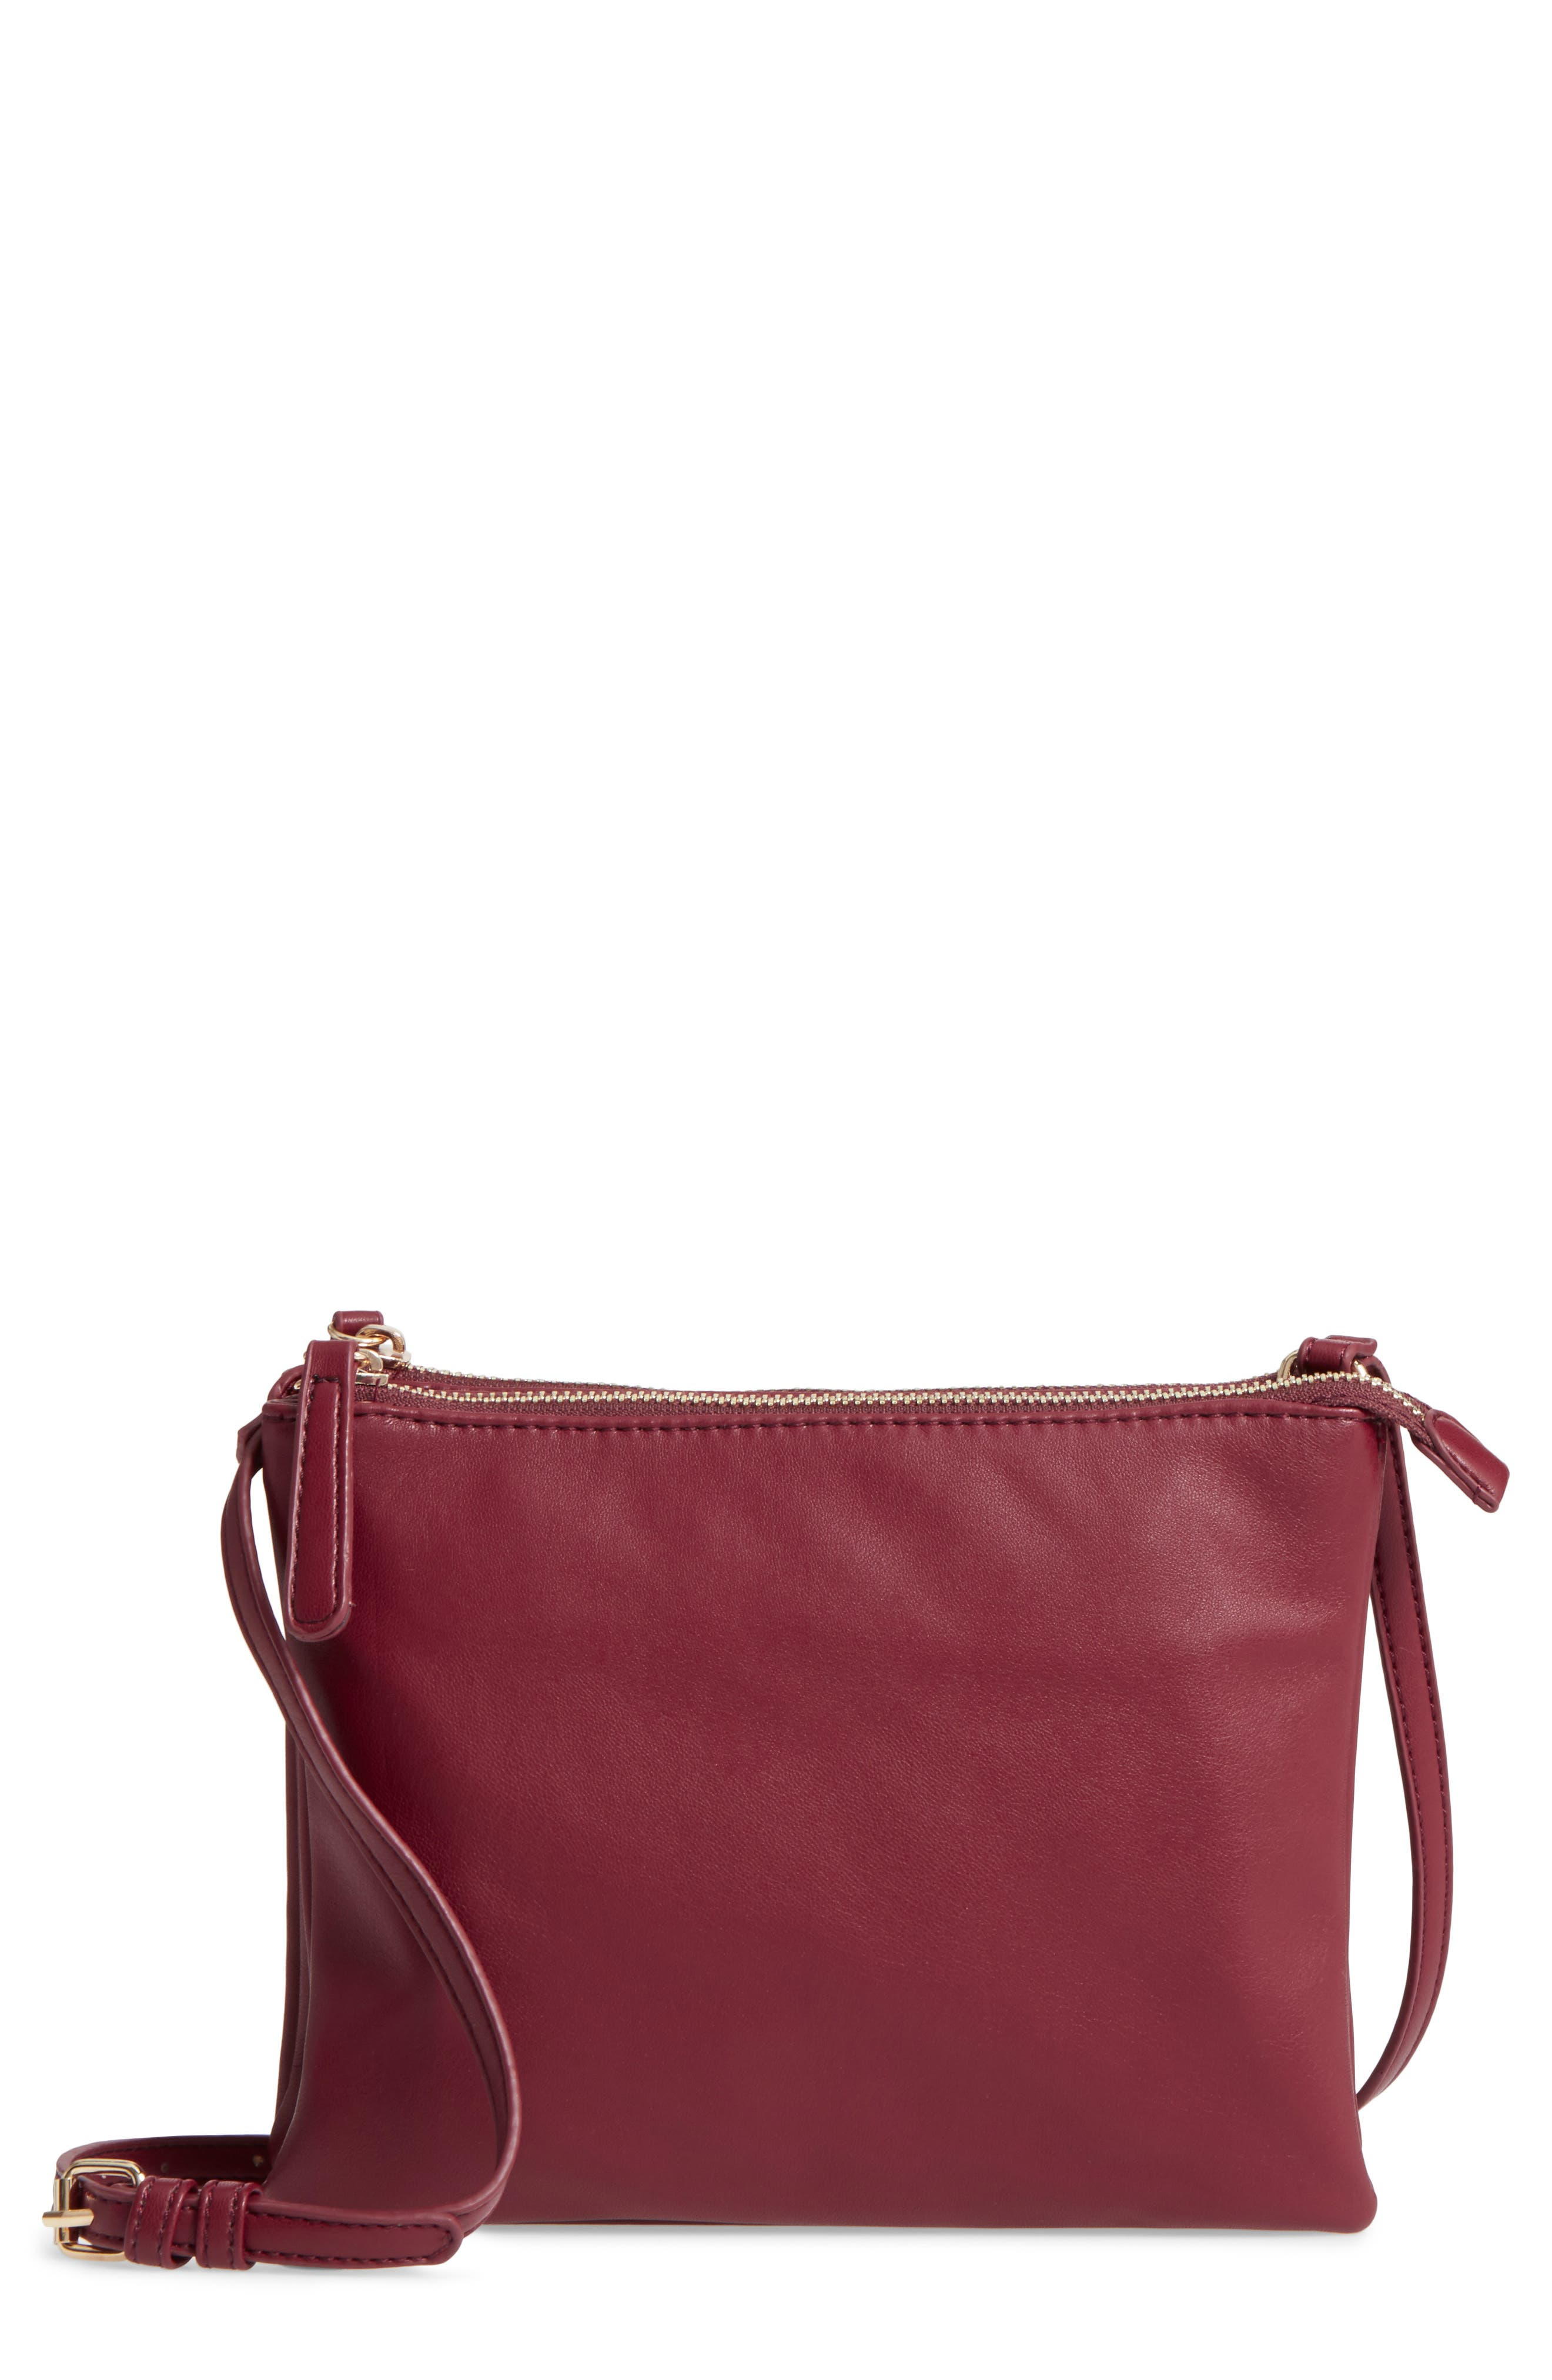 Madden Faux Leather Pouch Crossbody Bag,                             Main thumbnail 3, color,